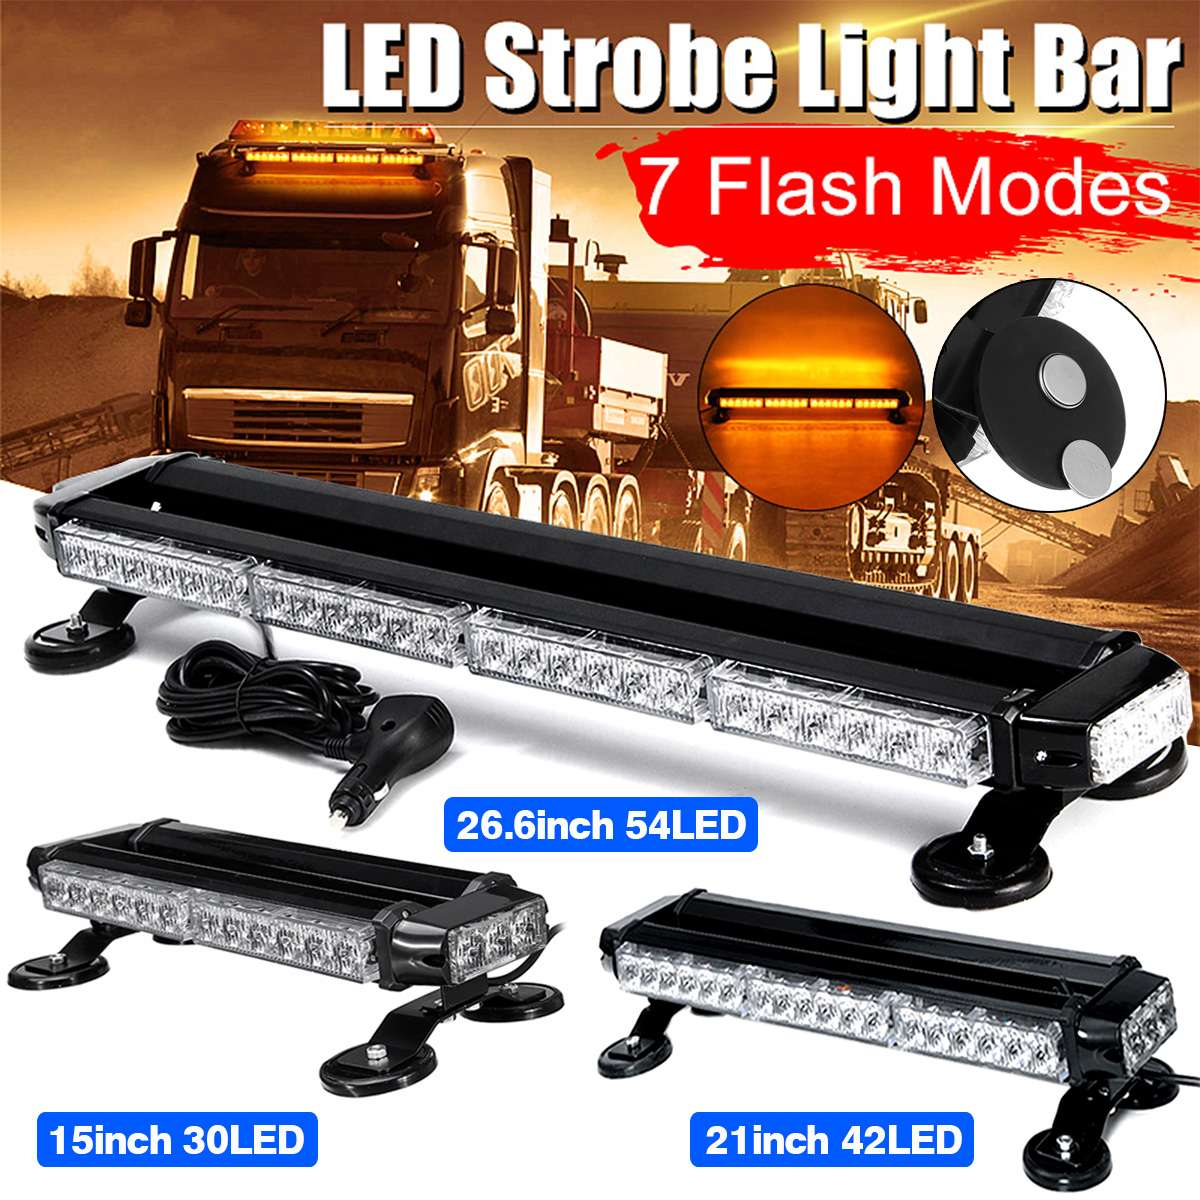 42 LED 4 Side Car Roof Advisor Beacon Strobe Flashing Security Warning Light Bar Emergency Light Magnetic 7 Flash Patterns